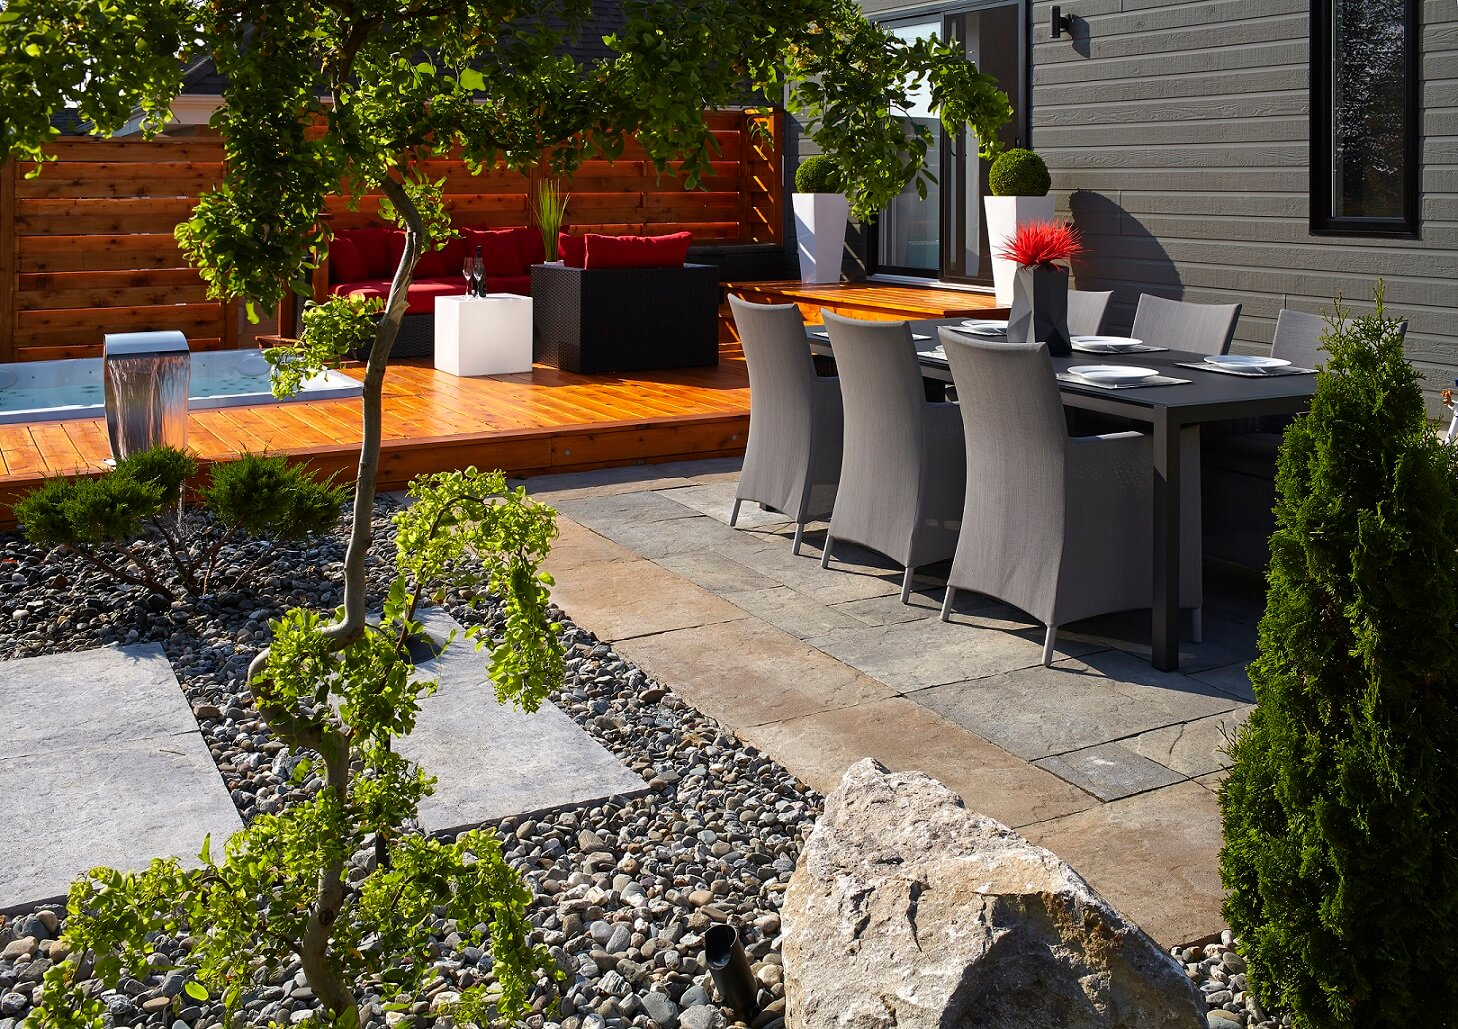 Ma onnex am nagement paysager on pinterest mondrian - Idee d amenagement de terrasse ...